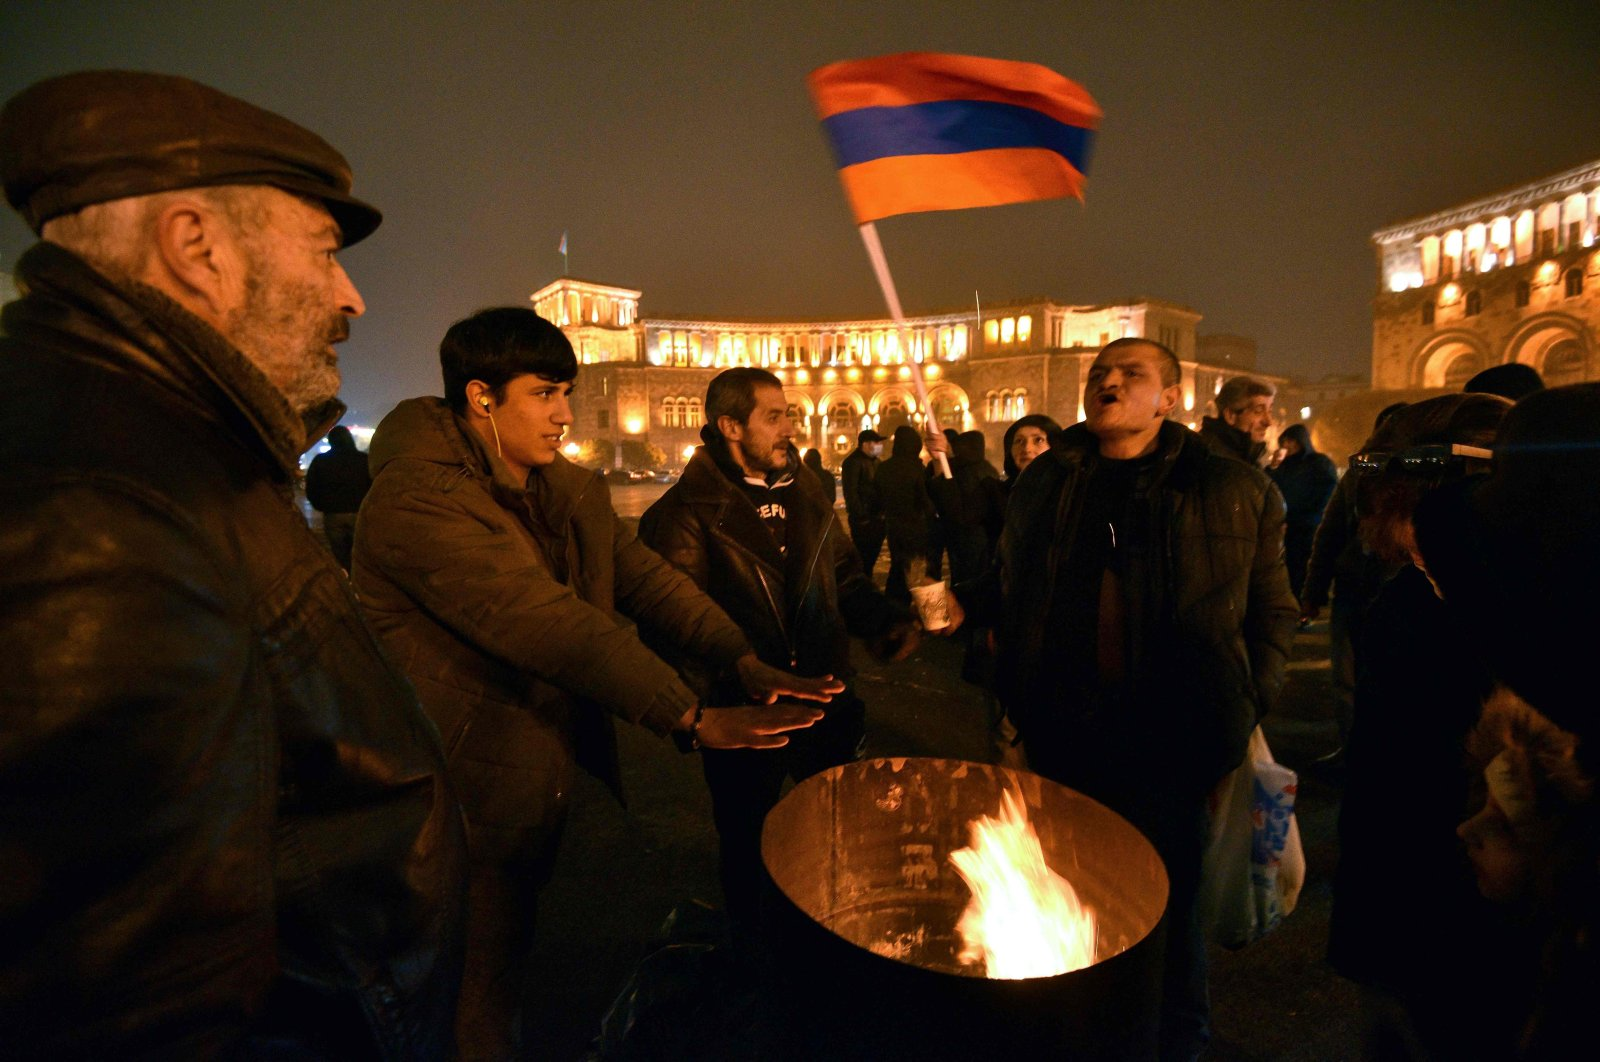 Opposition supporters warm themselves near a bonfire during a rally to demand the resignation of Prime Minister Nikol Pashinyan over the peace deal with Azerbaijan that ended six weeks of war over the disputed region of Nagorno-Karabakh, in Yerevan's Republic Square on Dec. 22, 2020. (AFP Photo)